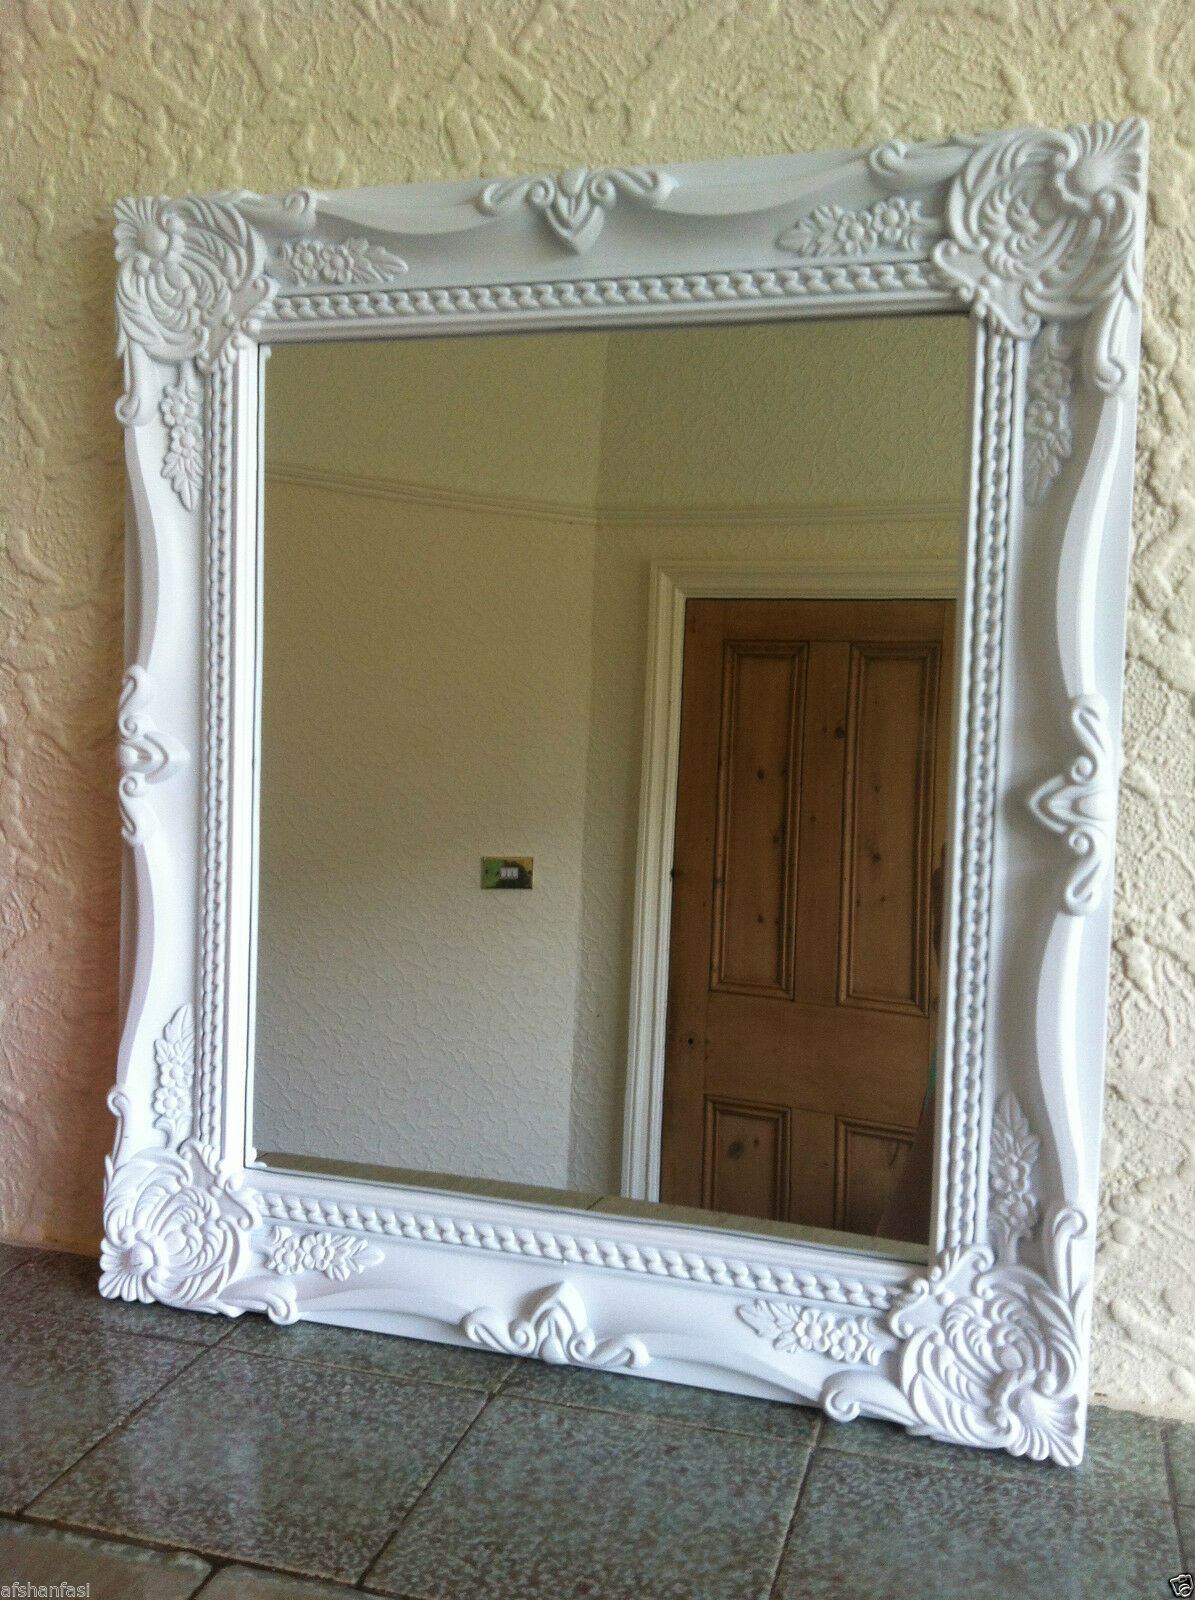 Best ideas about Shabby Chic Mirror . Save or Pin SHABBY CHIC ORNATE BATHROOM WALL MIRROR BLACK WHITE RESIN Now.